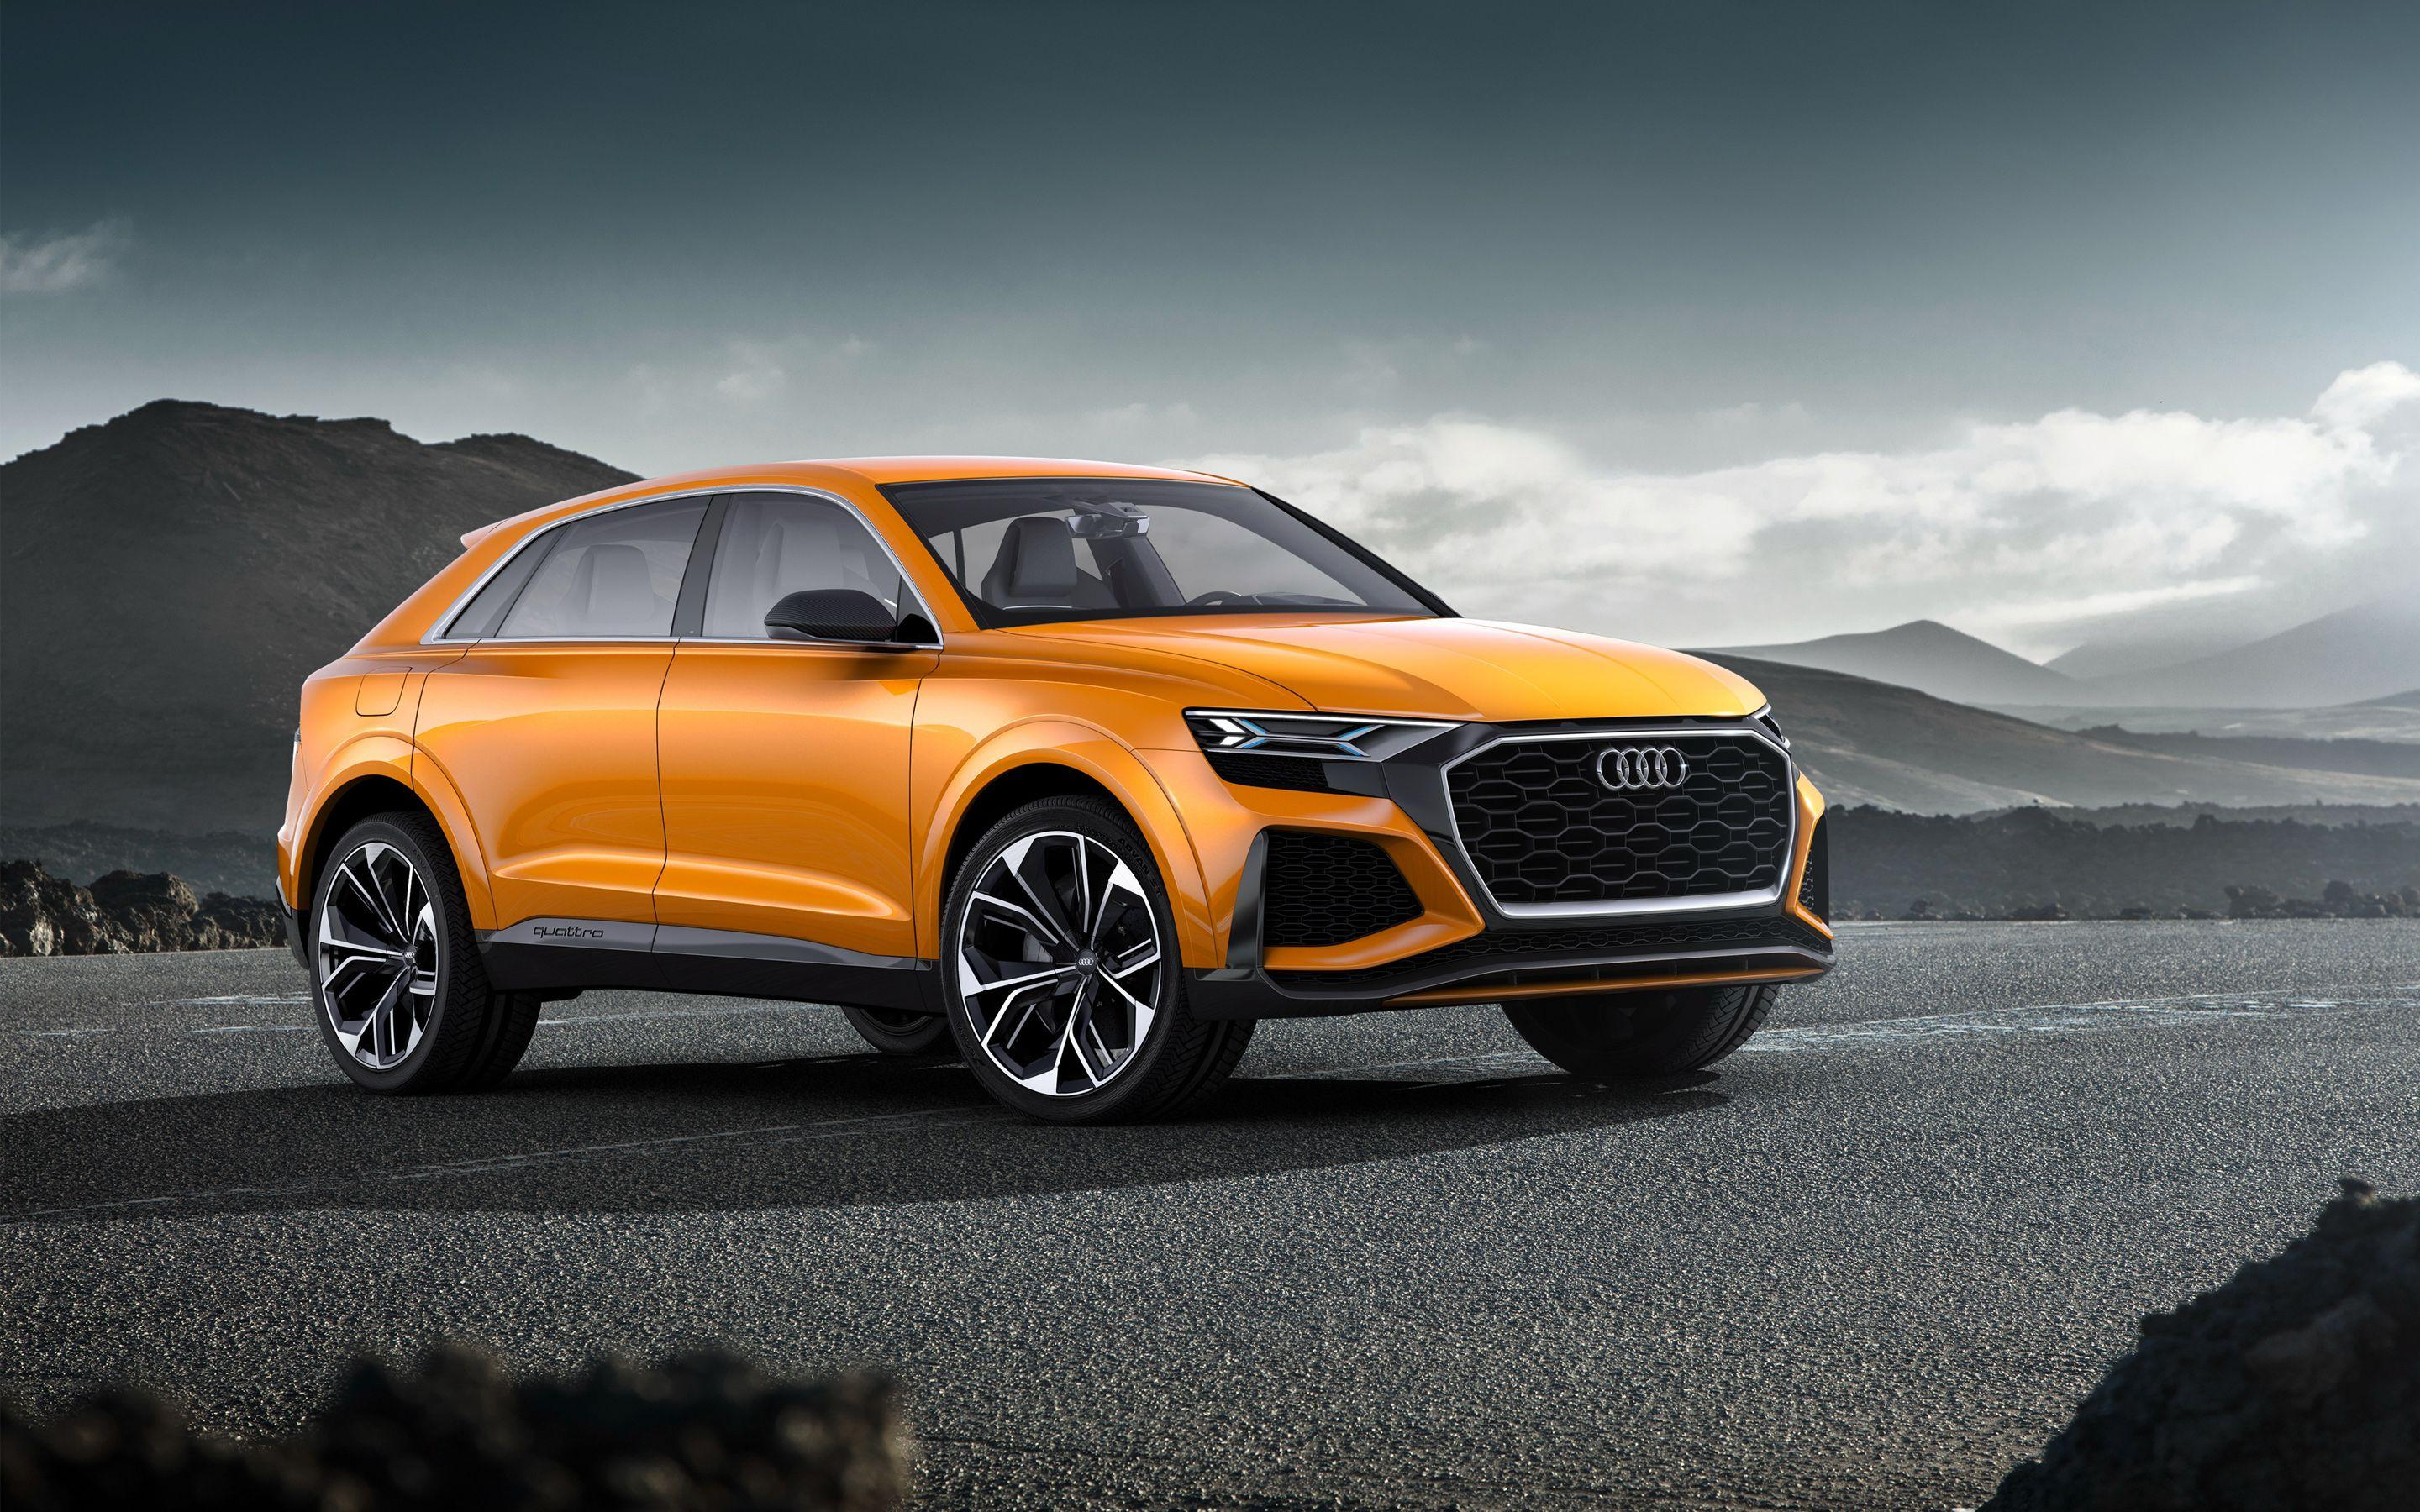 2018 Audi Q8 Sport Concept 4K Wallpapers